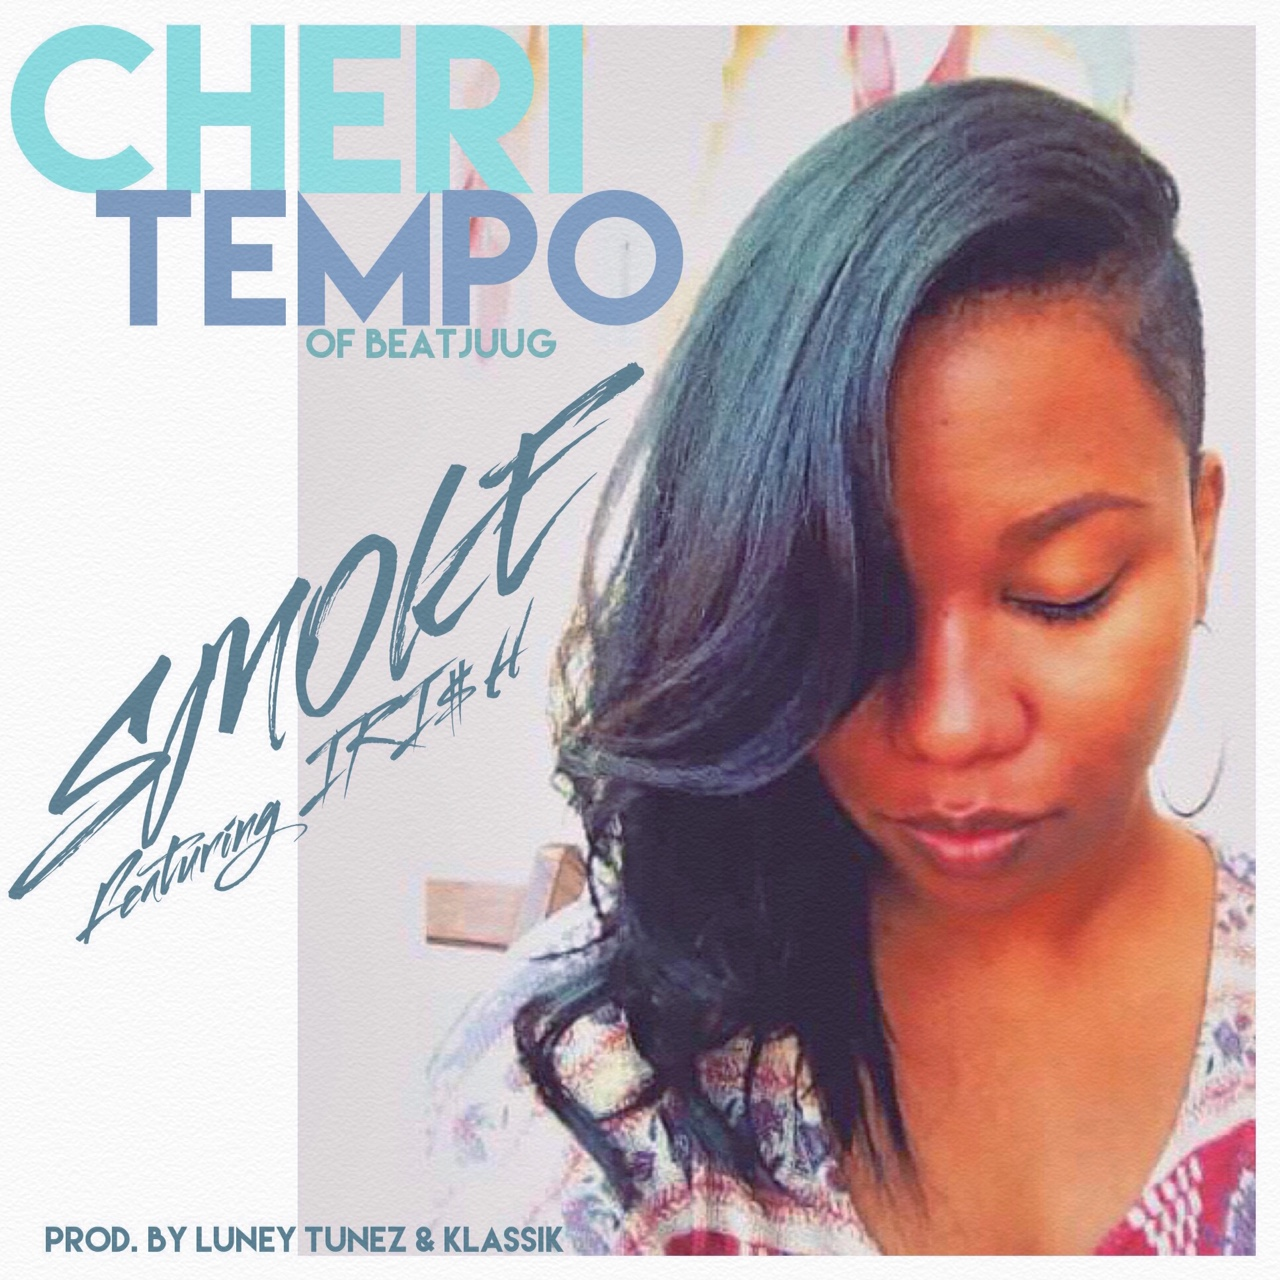 _BeatJUUG - Cheri Tempo - Smoke ft. IRI$H (prod by Luney Tunez & Klassik)